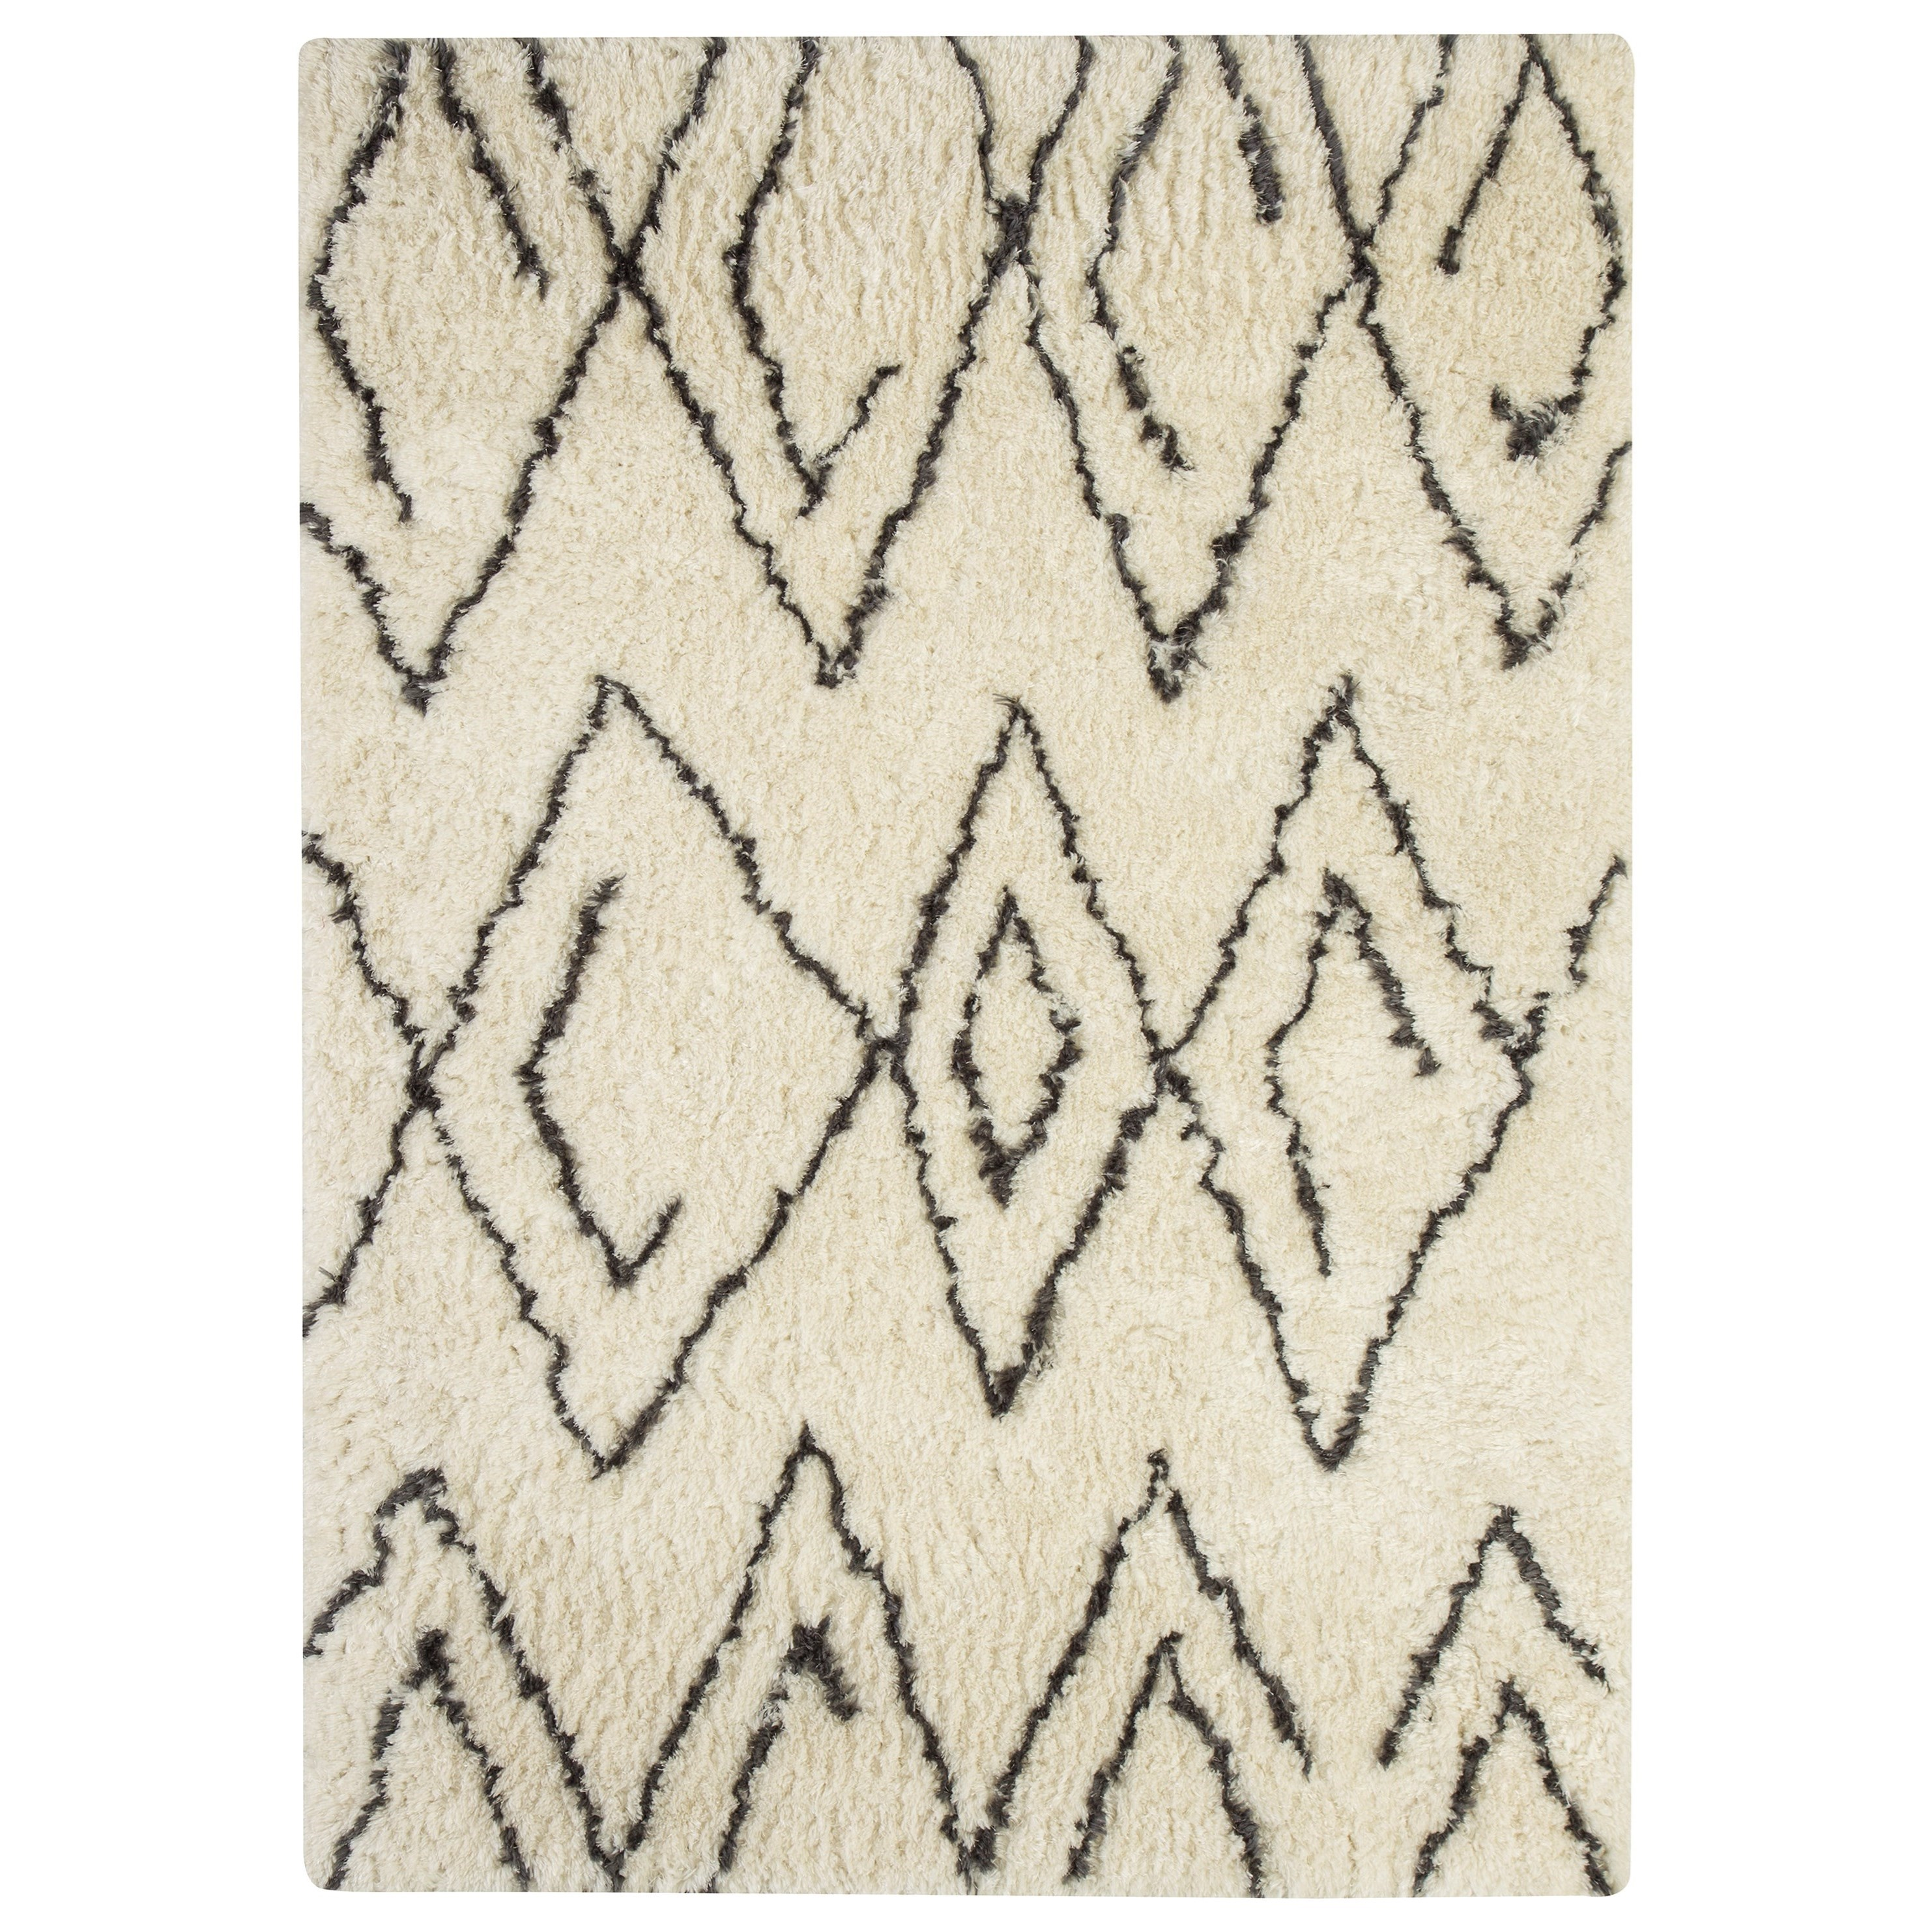 Signature Design by Ashley Contemporary Area Rugs Mevalyn White/Black Medium Rug - Item Number: R400252